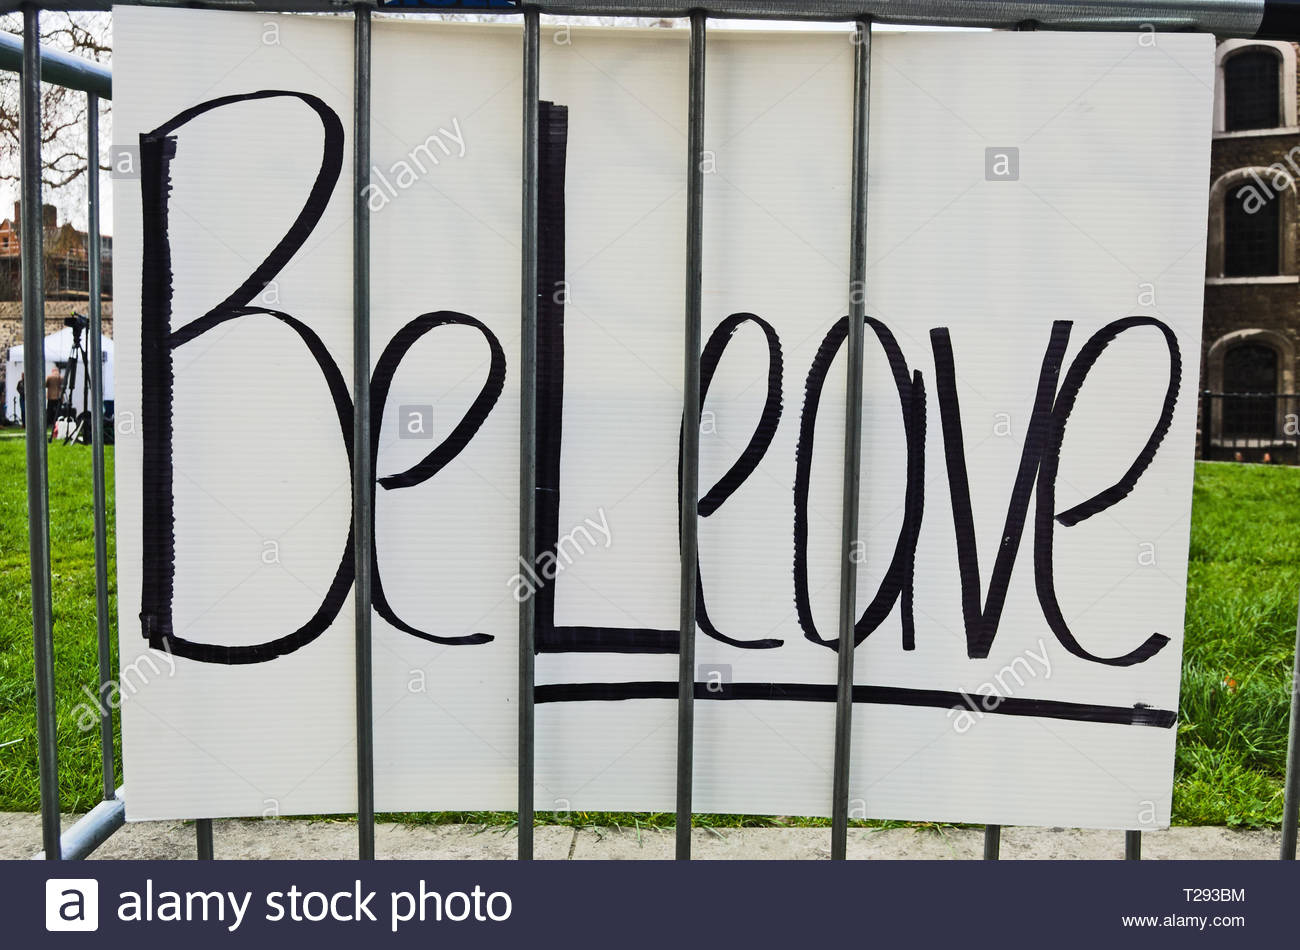 Westminster, London, March 30th, 2019. A day after the UK was to leave the EU, a protest banner with the pun 'Beleave' is left on railing outside the  - Stock Image